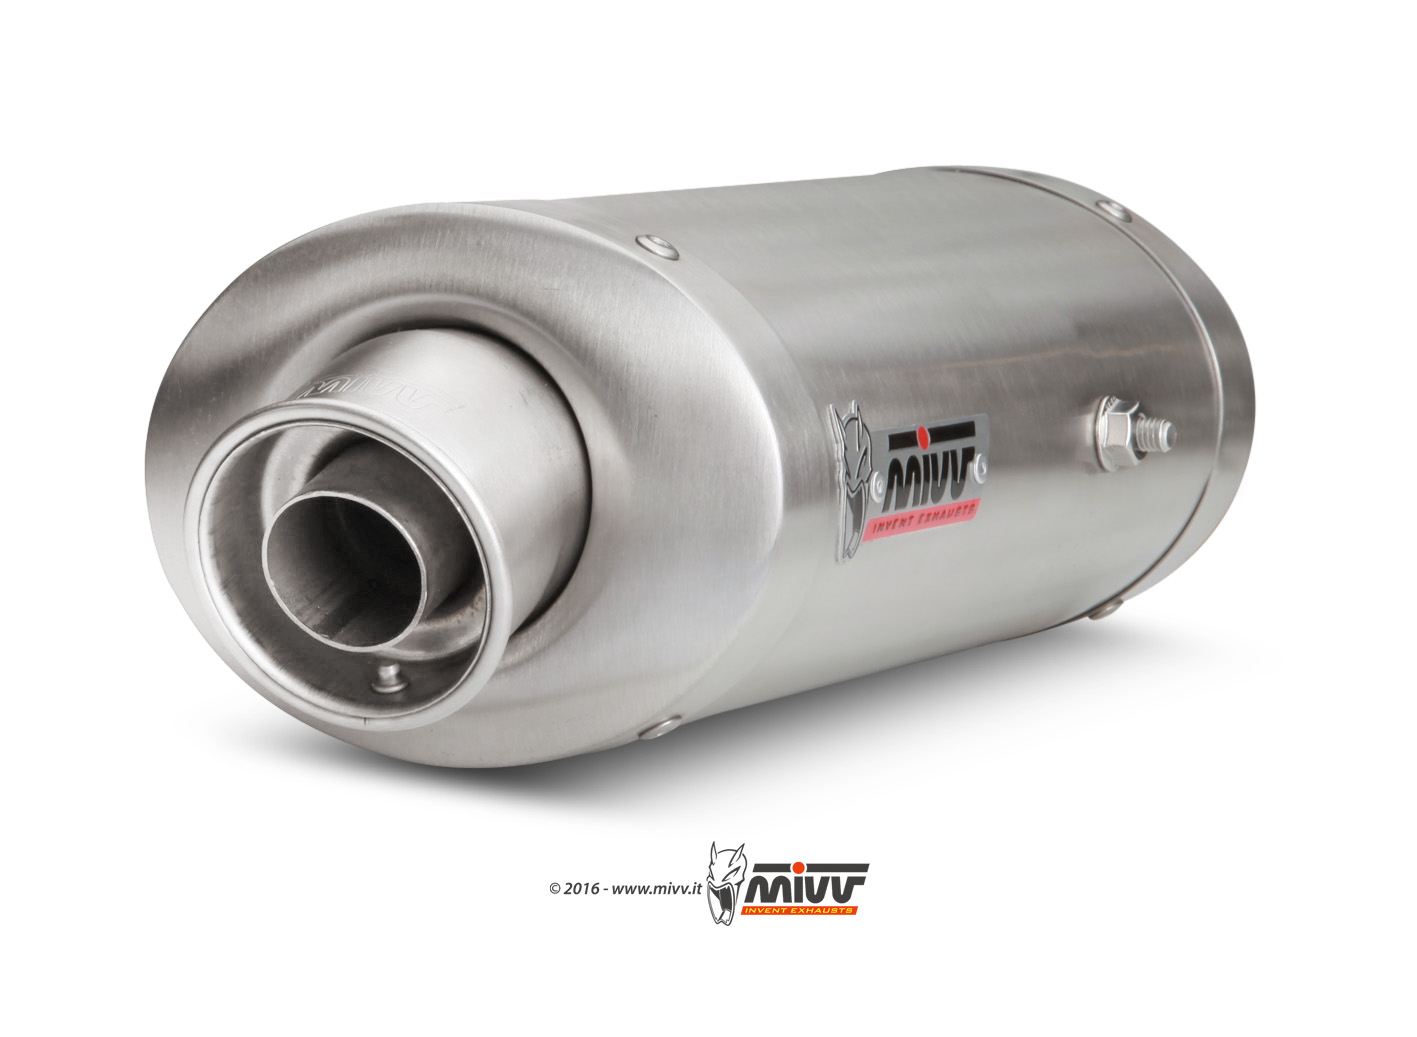 Honda CBR 600 RR Exhaust Mivv Oval Stainless steel UH.027.LX2